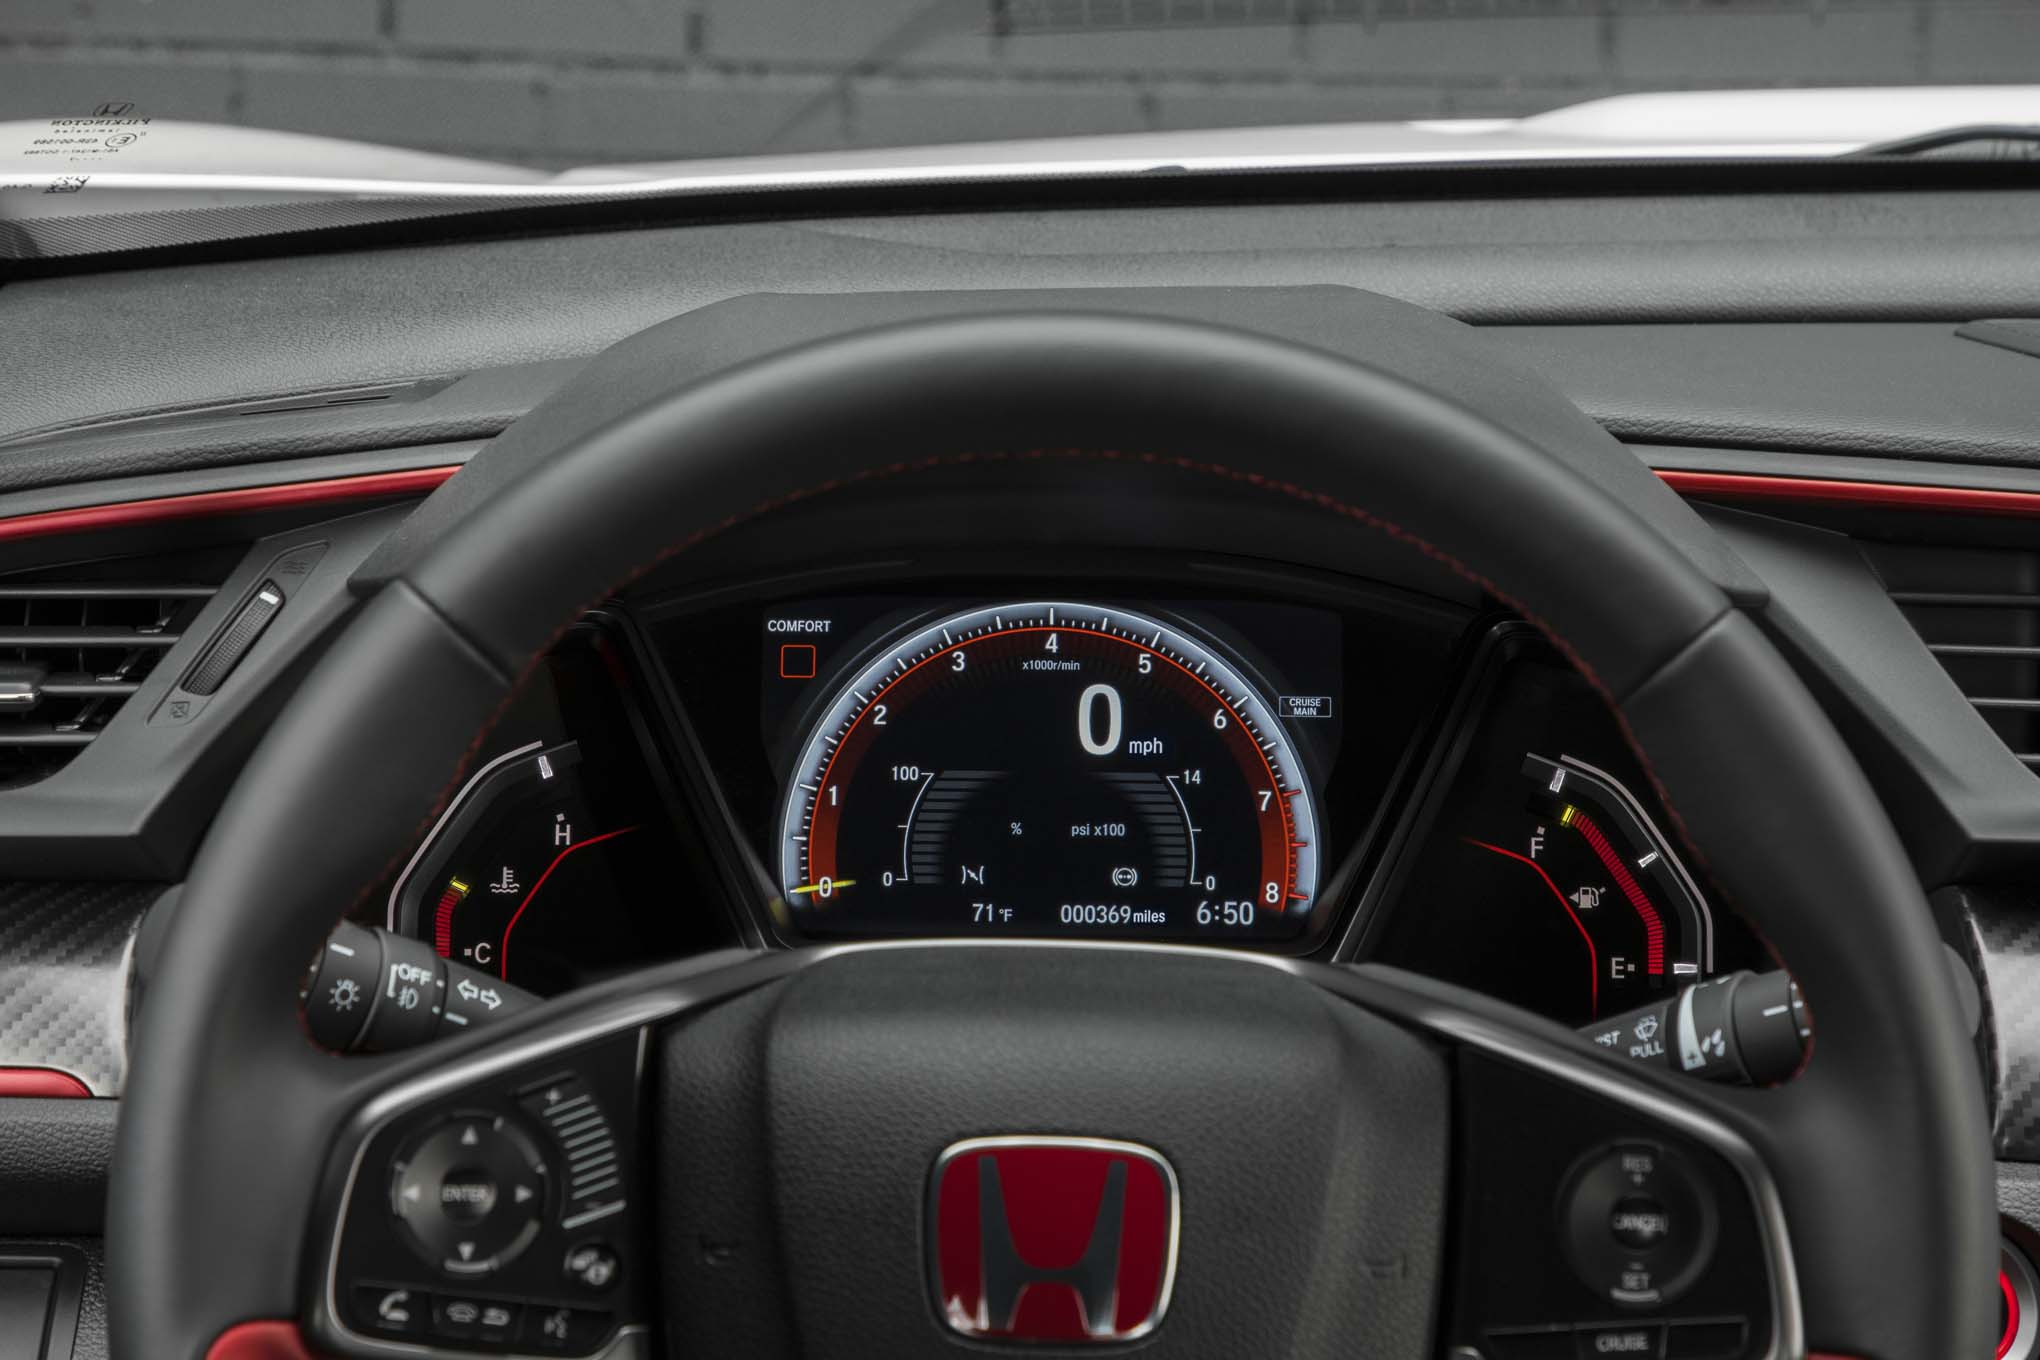 Type R Crv >> 2017 Honda Civic Type R: Pro Racer's Analysis | Automobile Magazine